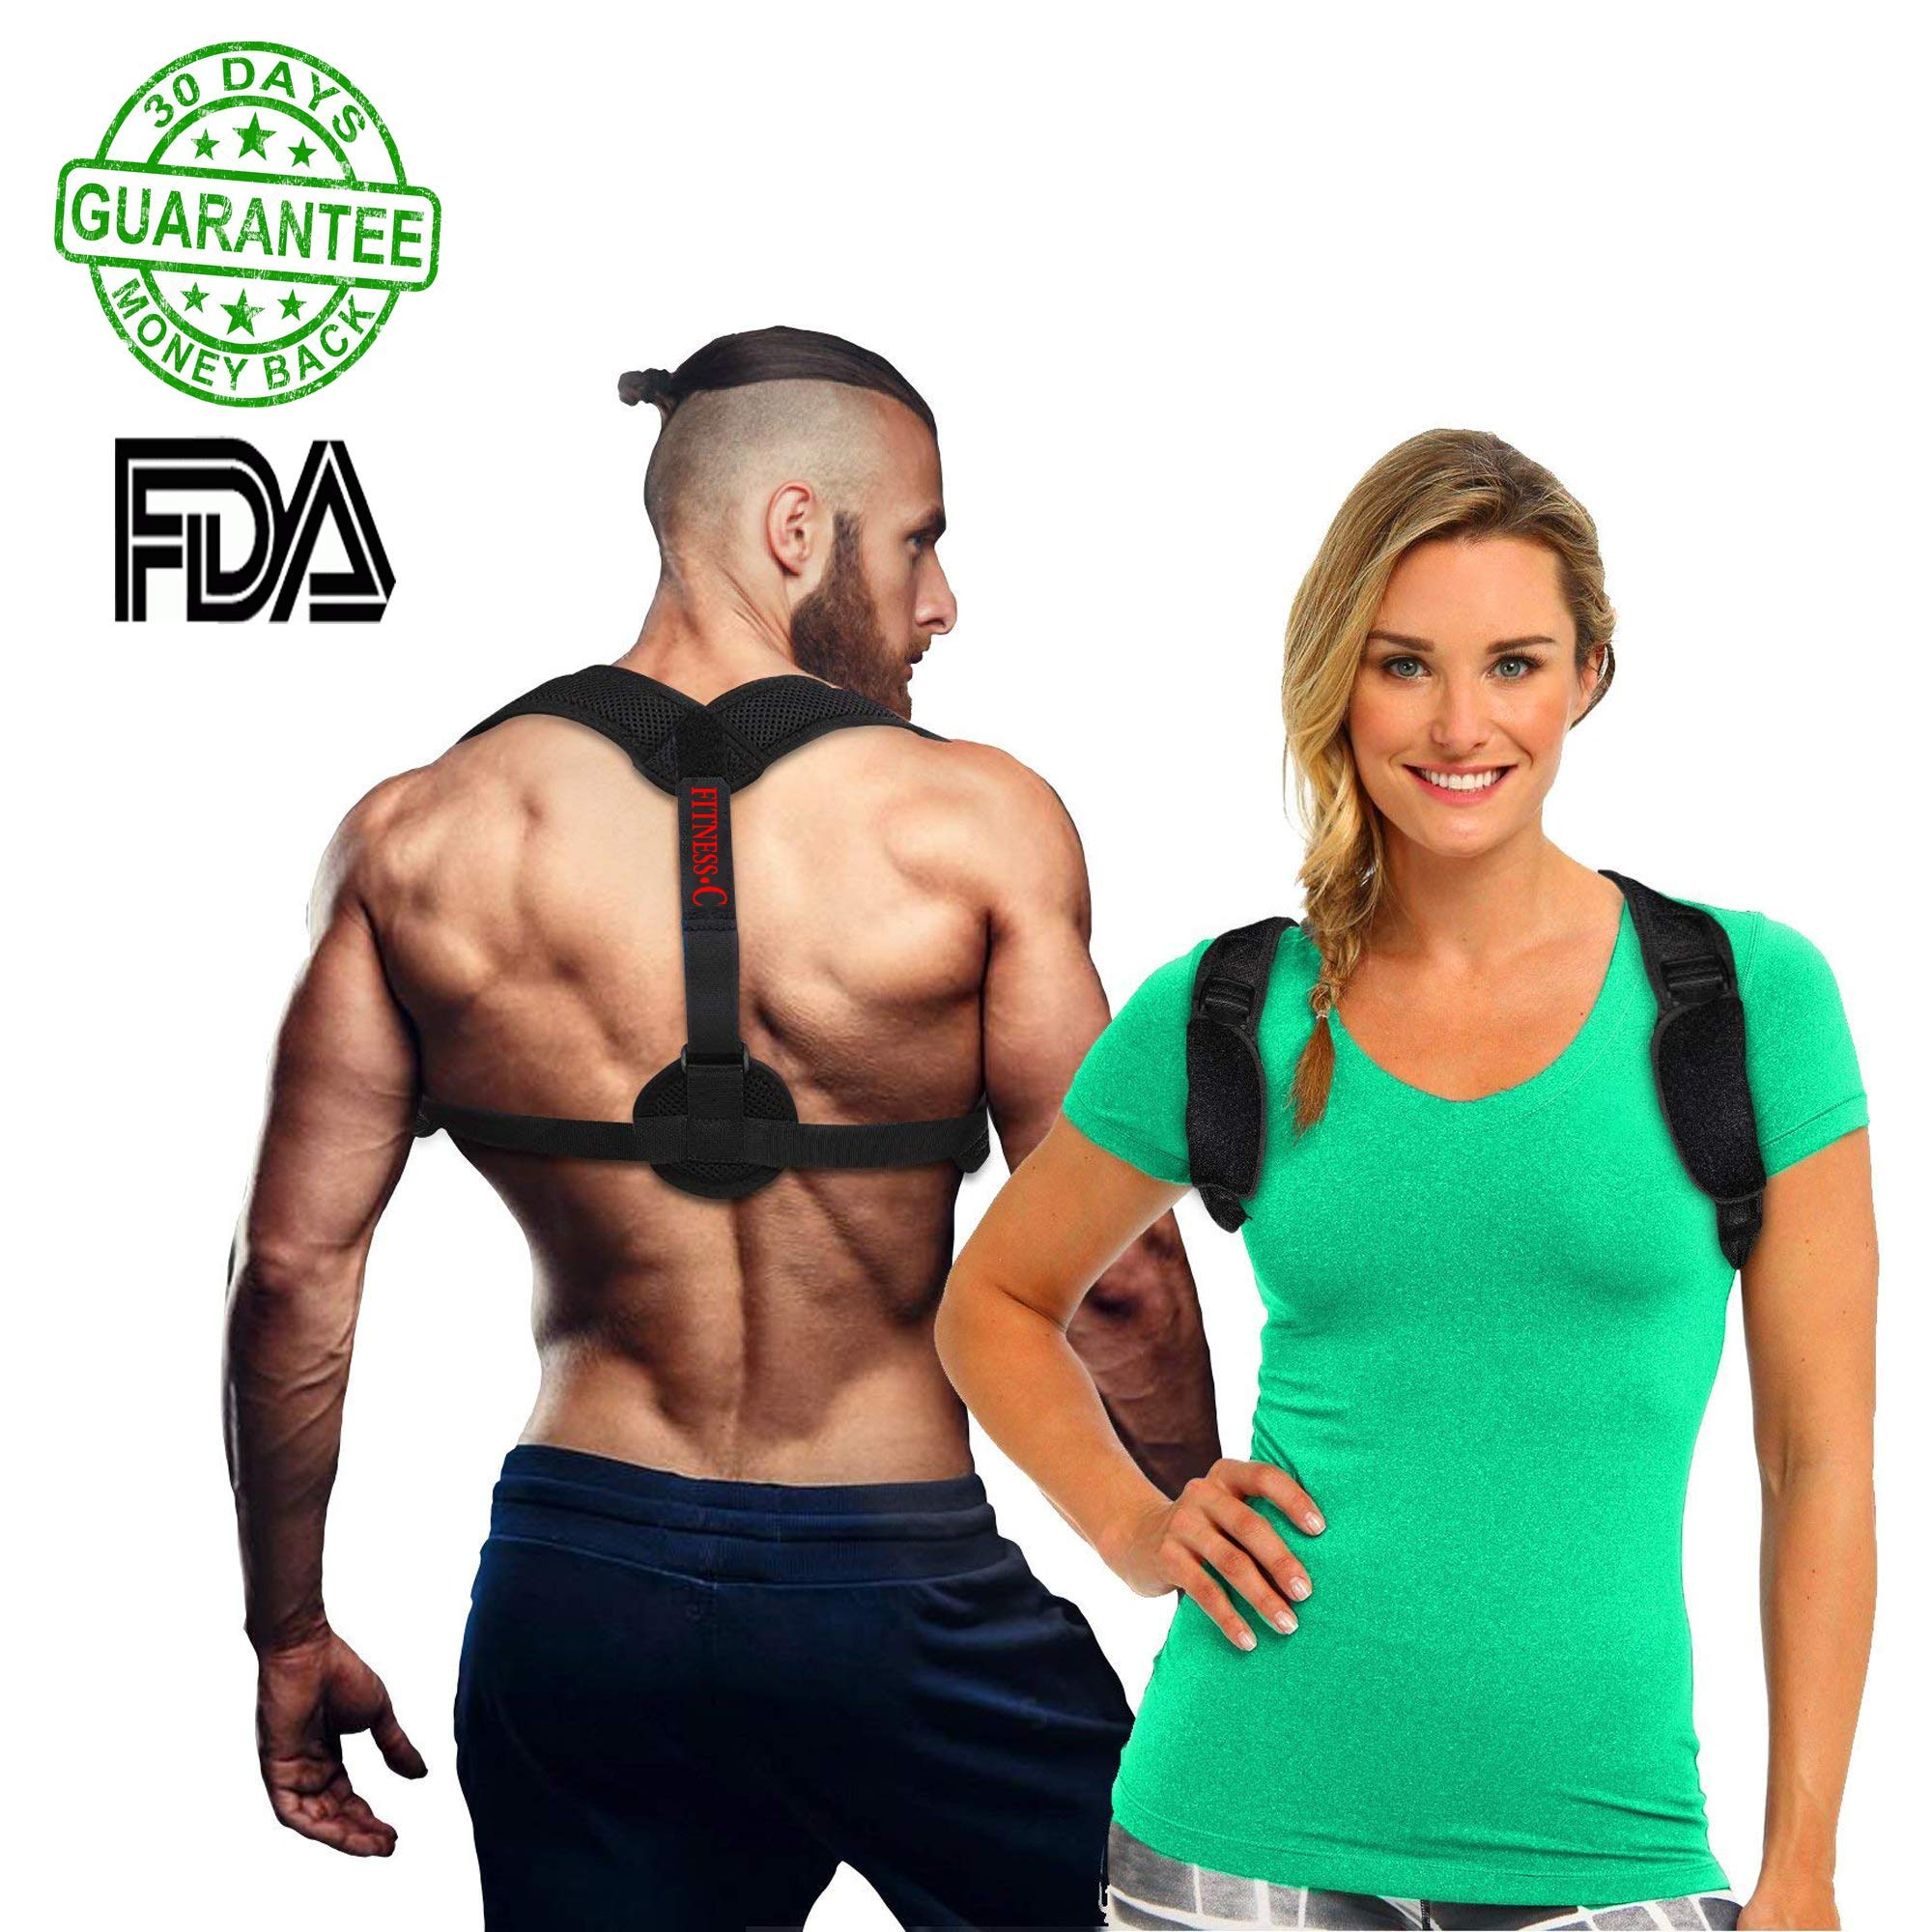 2018 Original Back Posture Corrector for Women and Men – Adjustable, Effective, Comfortable Clavicle Correct Brace - Improving Posture Support by Fitness.C   Free eBook, Bag and Underarm Pads